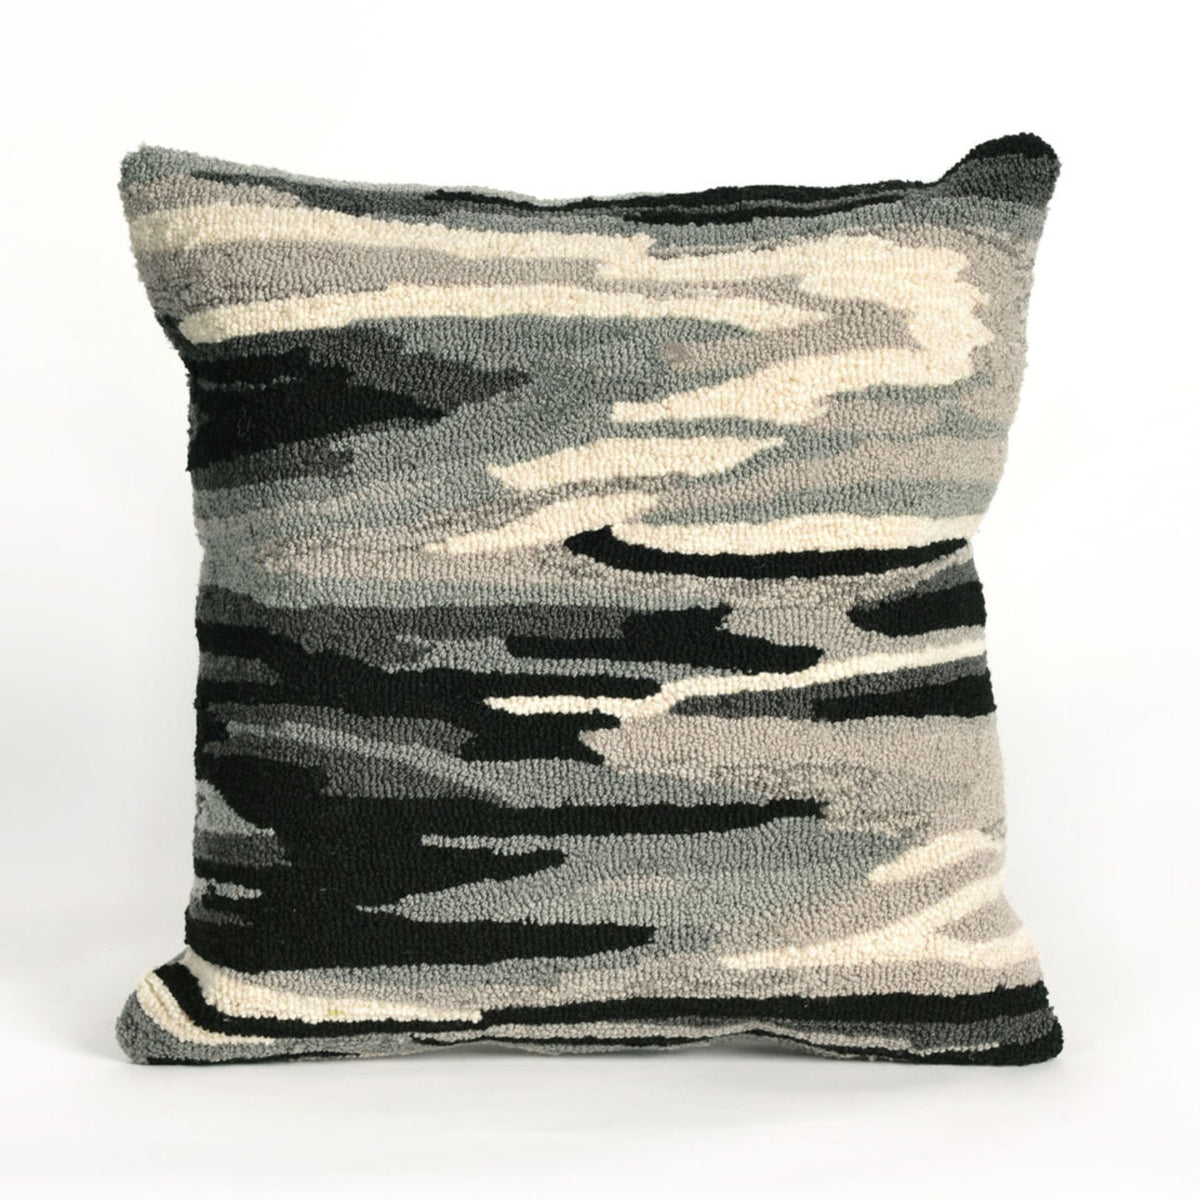 Frontporch Watercolor Charcoal Pillows